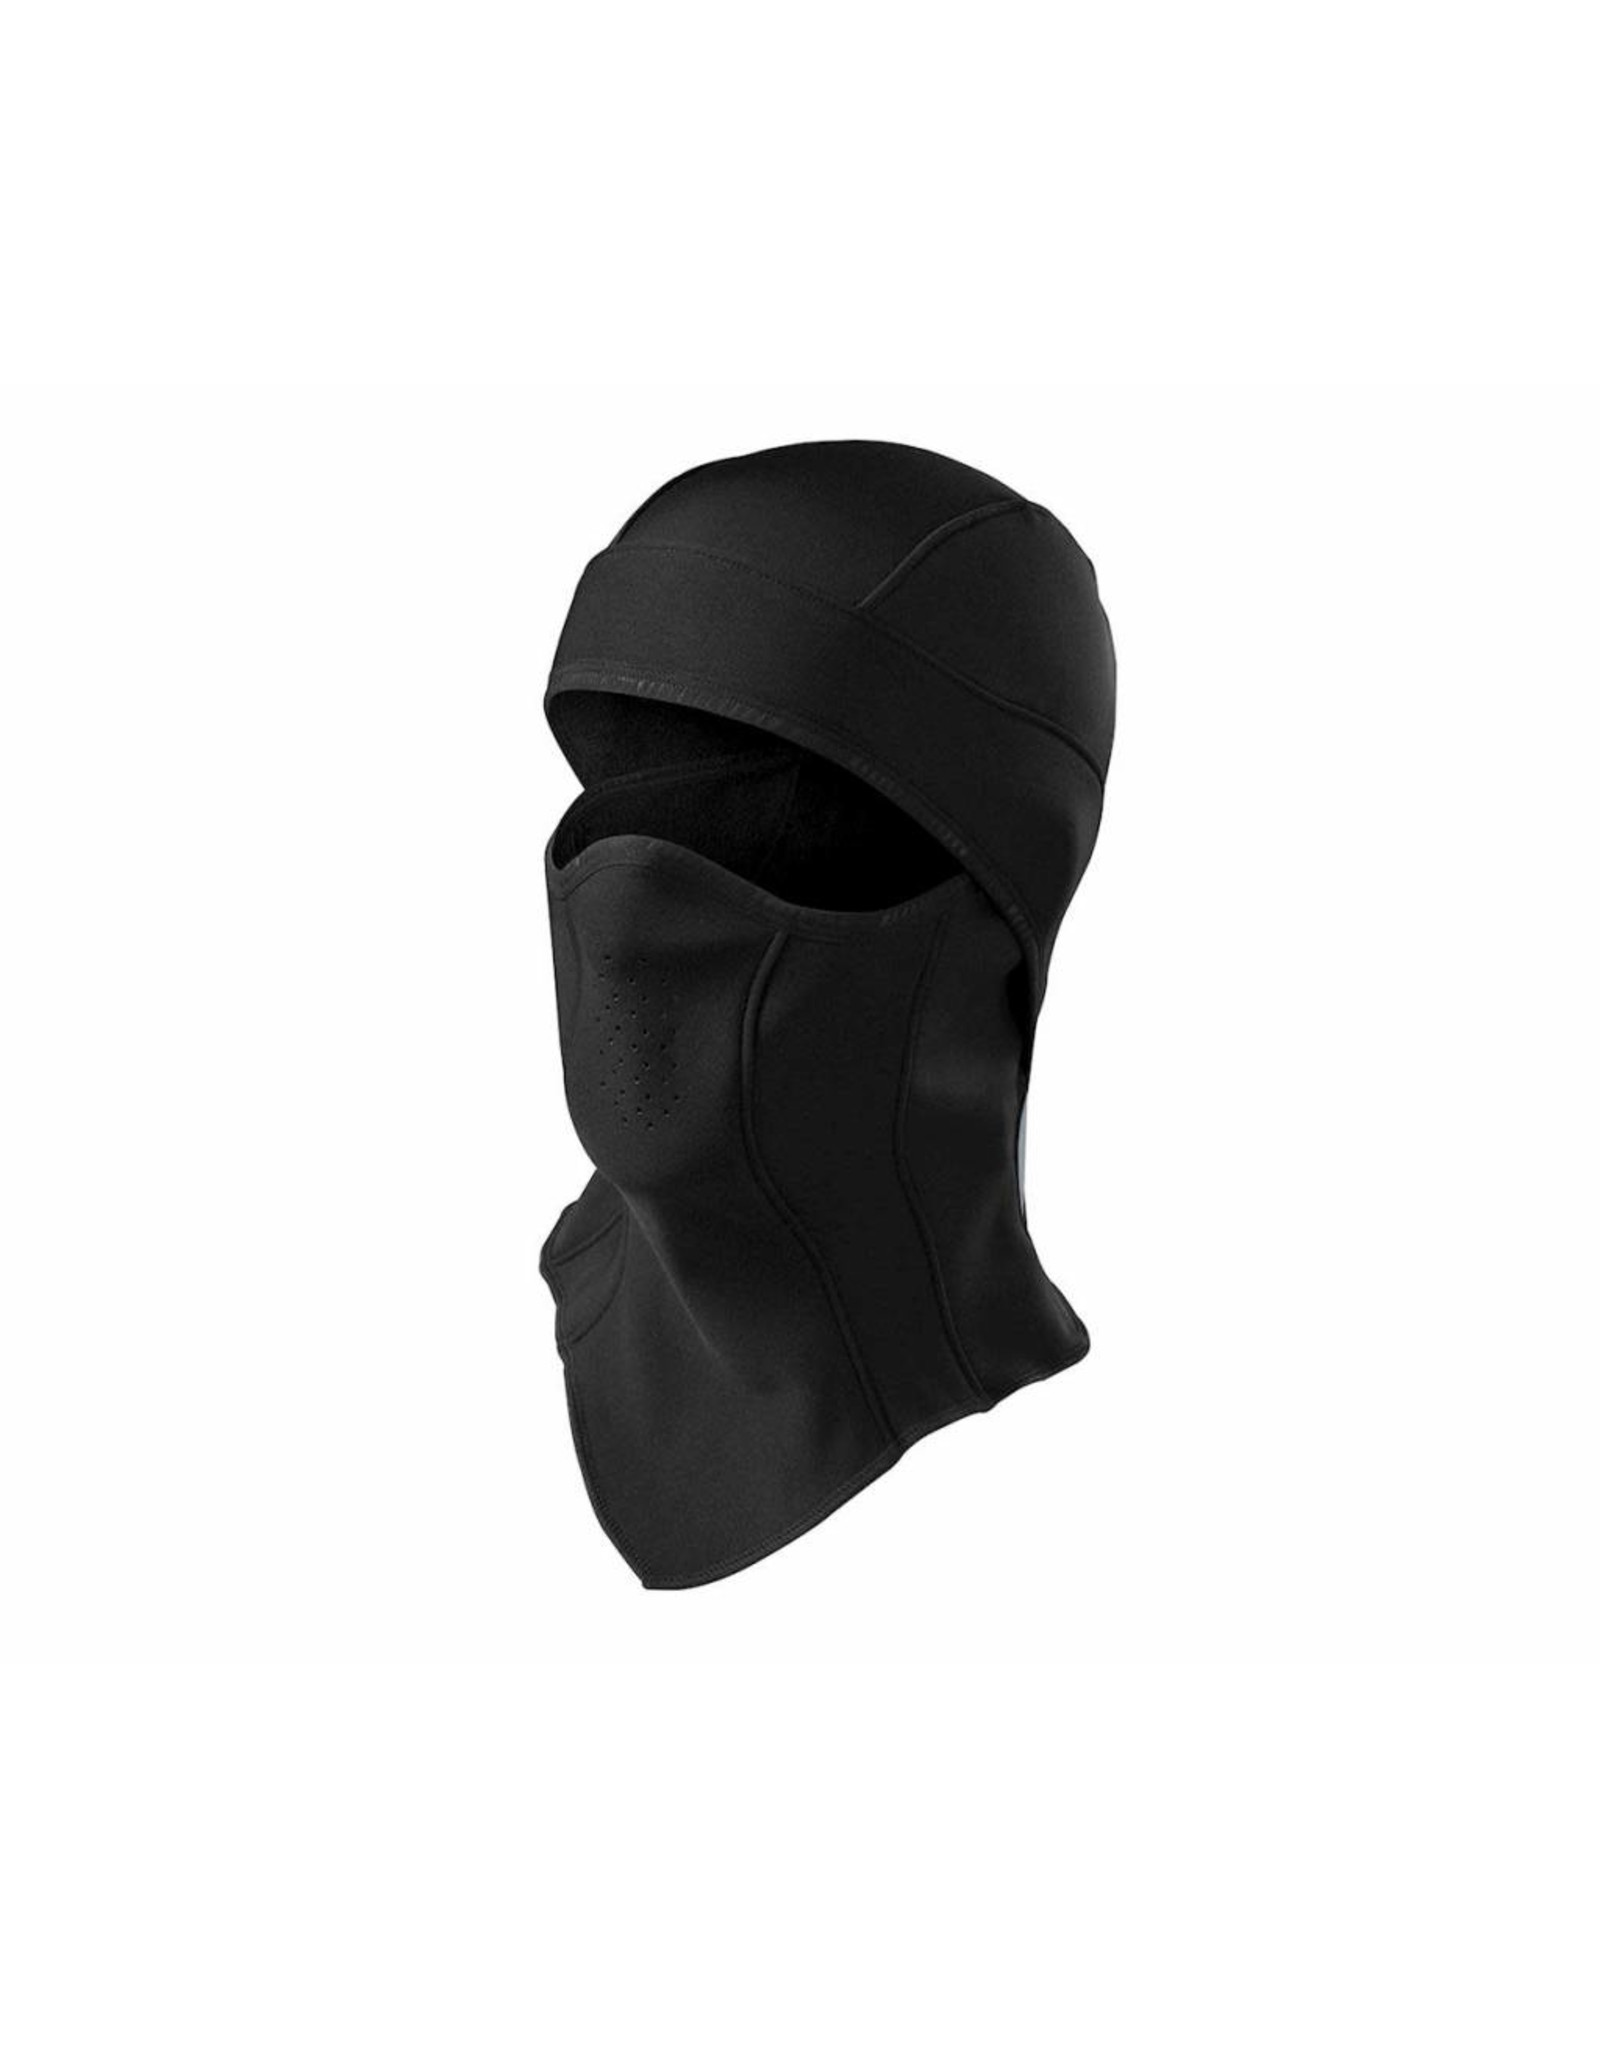 SPECIALIZED Specialized Element Balaclava - Black - L/XL